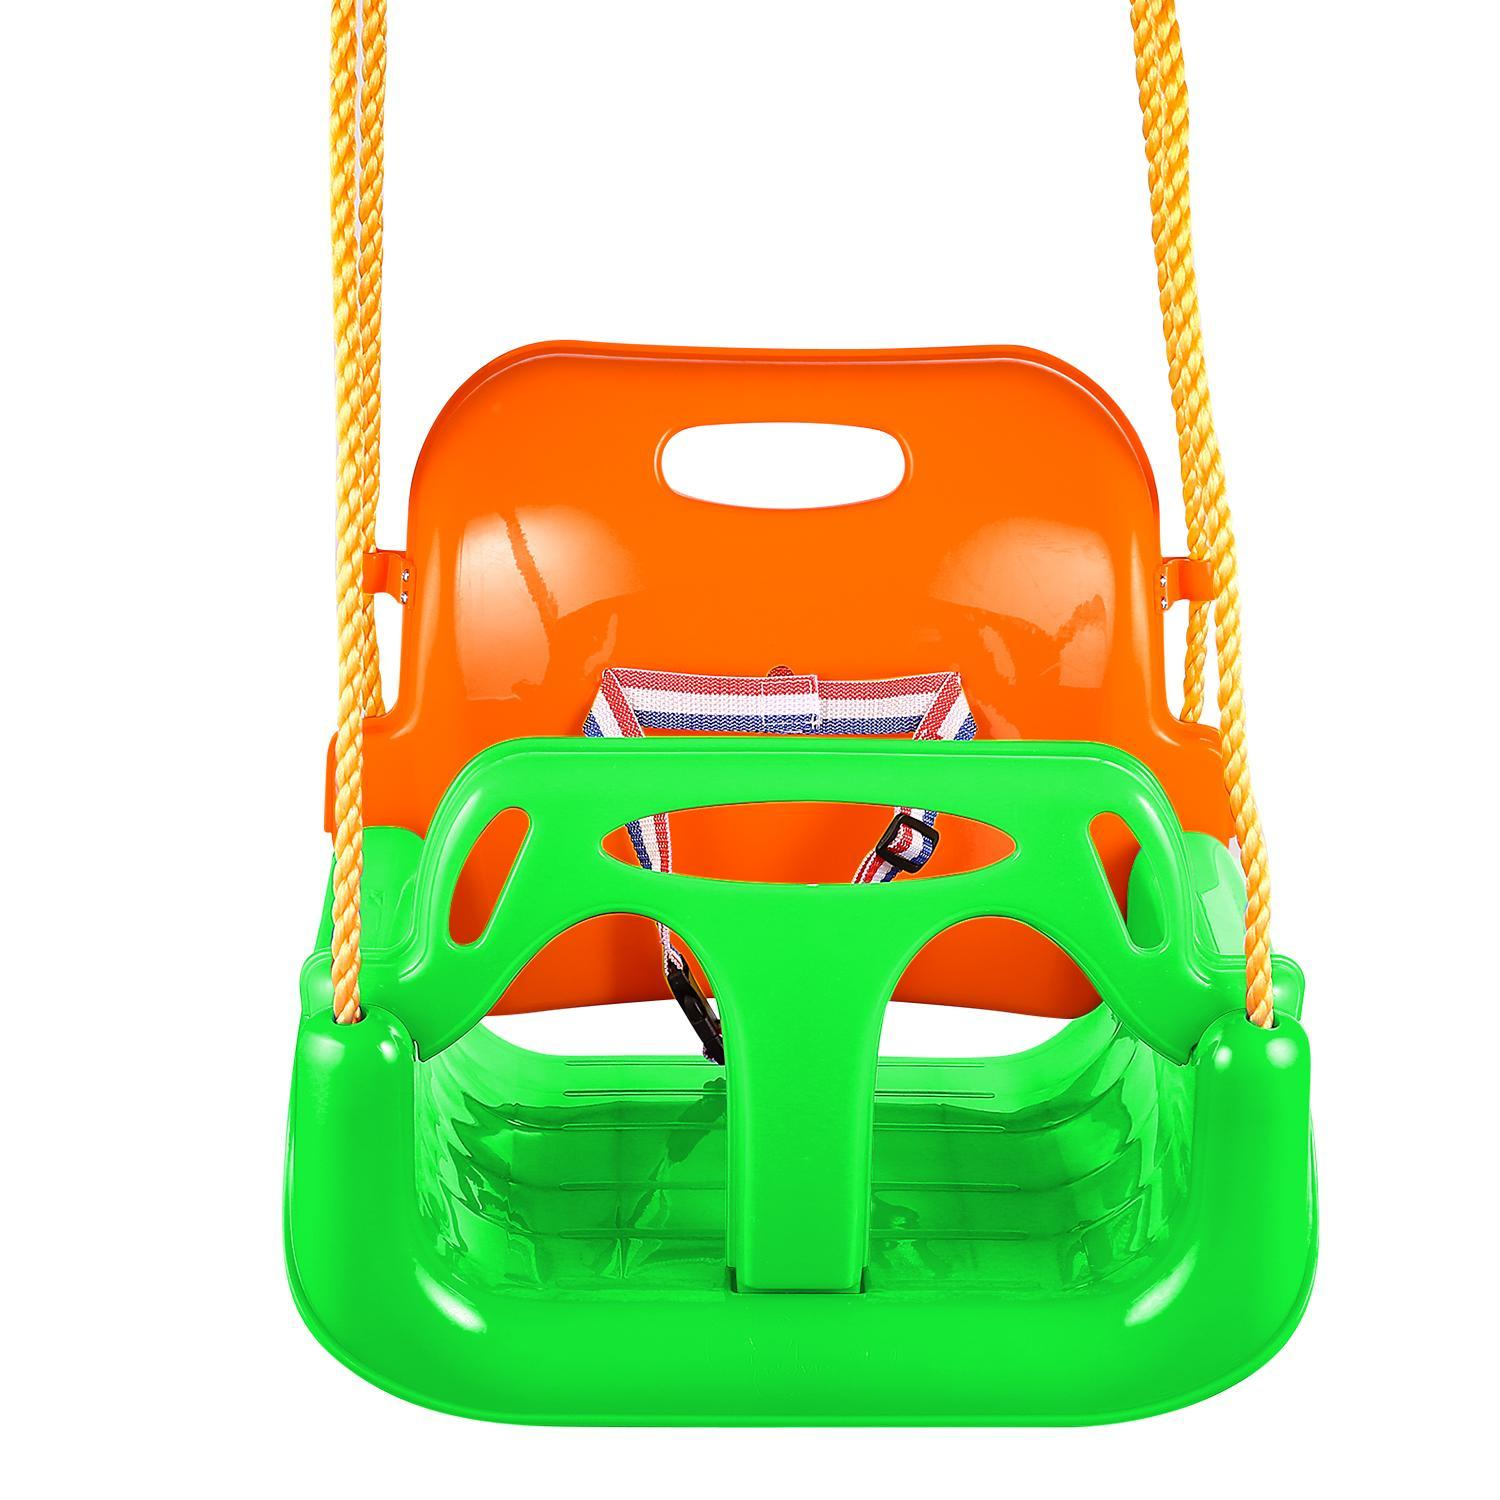 3 In 1 High Back Toddler Swing Baby Outdoor Swing Seat Seat Heavy Duty Chain Playground Swing Set HPPY by Hippy